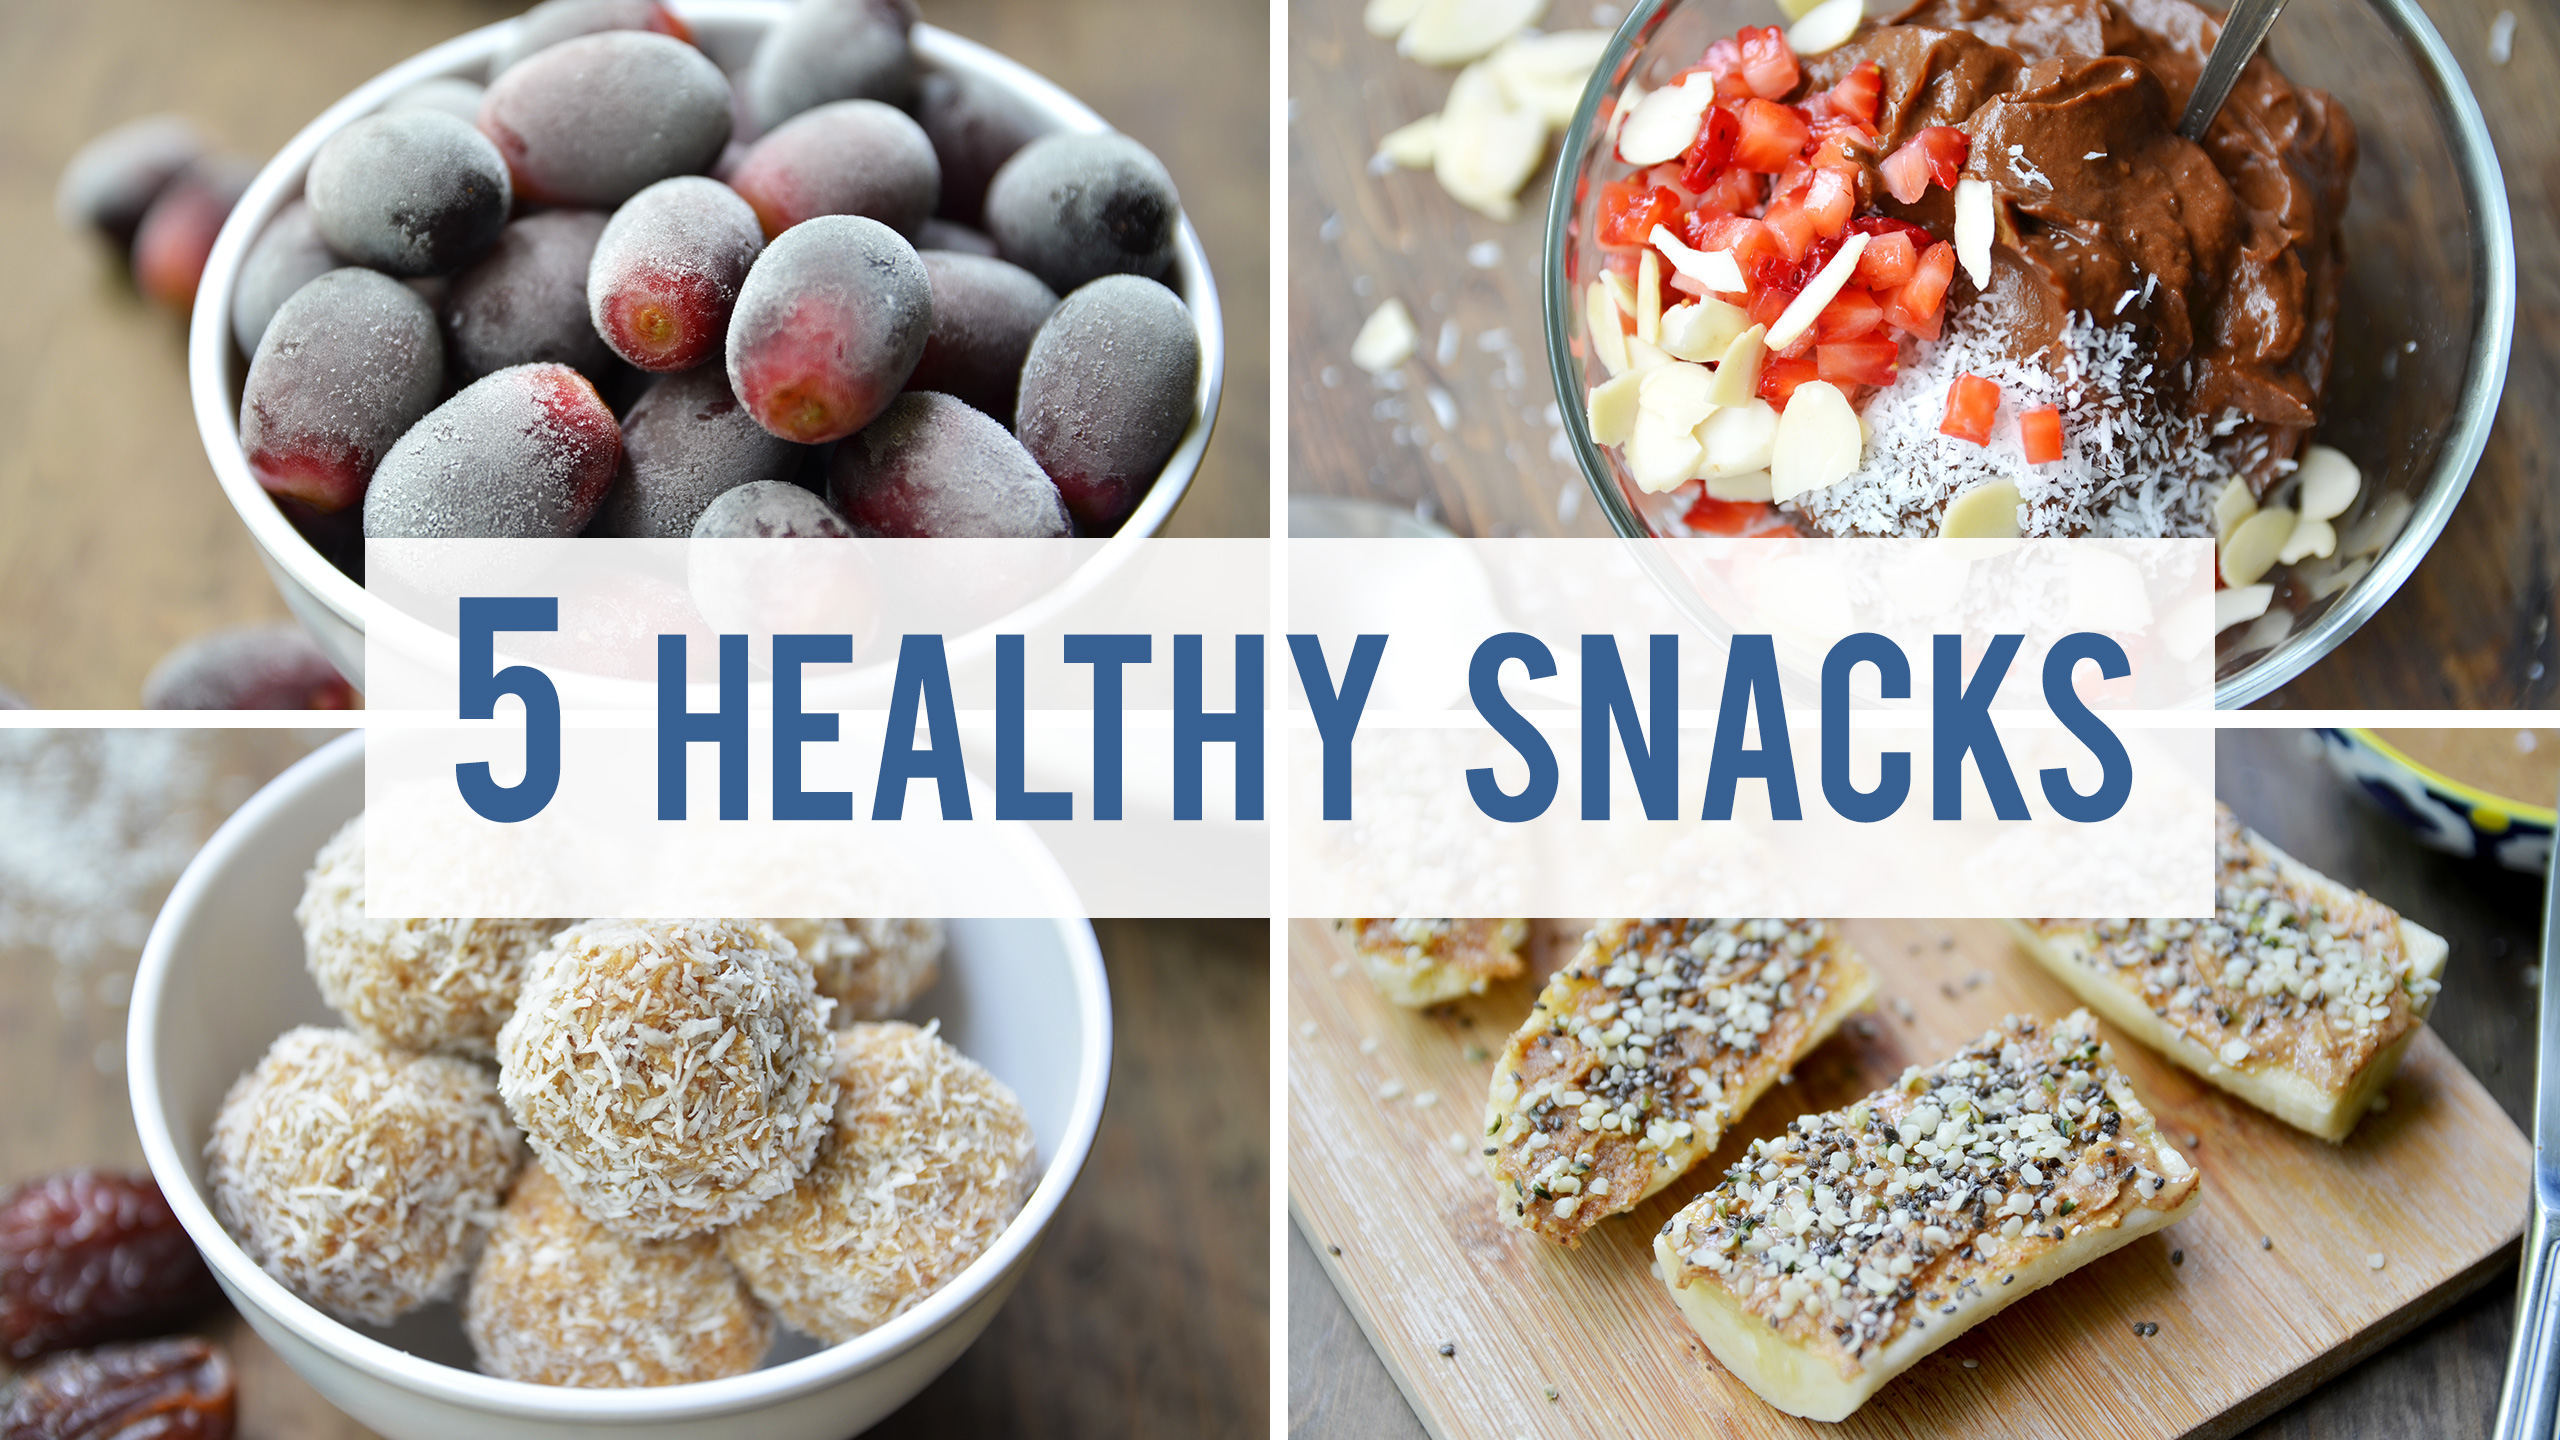 5 Healthy Snacks For Your Sweet Tooth